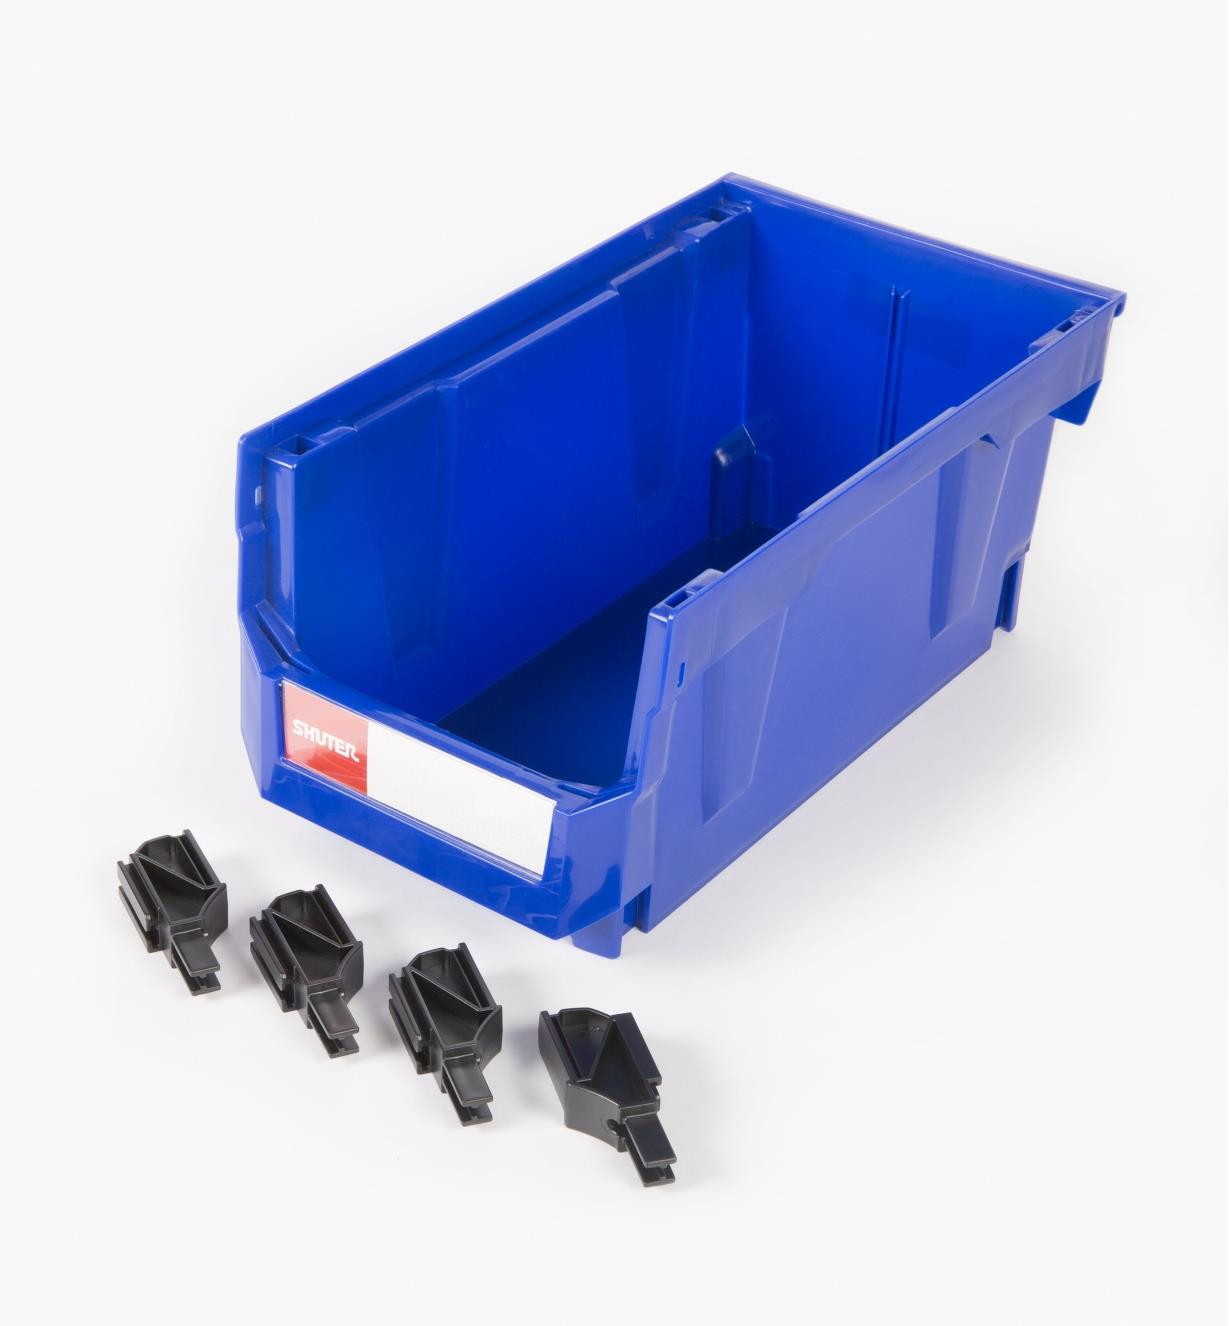 68K4265 - 175mm x 170mm x 342mm Stackable Storage Bin